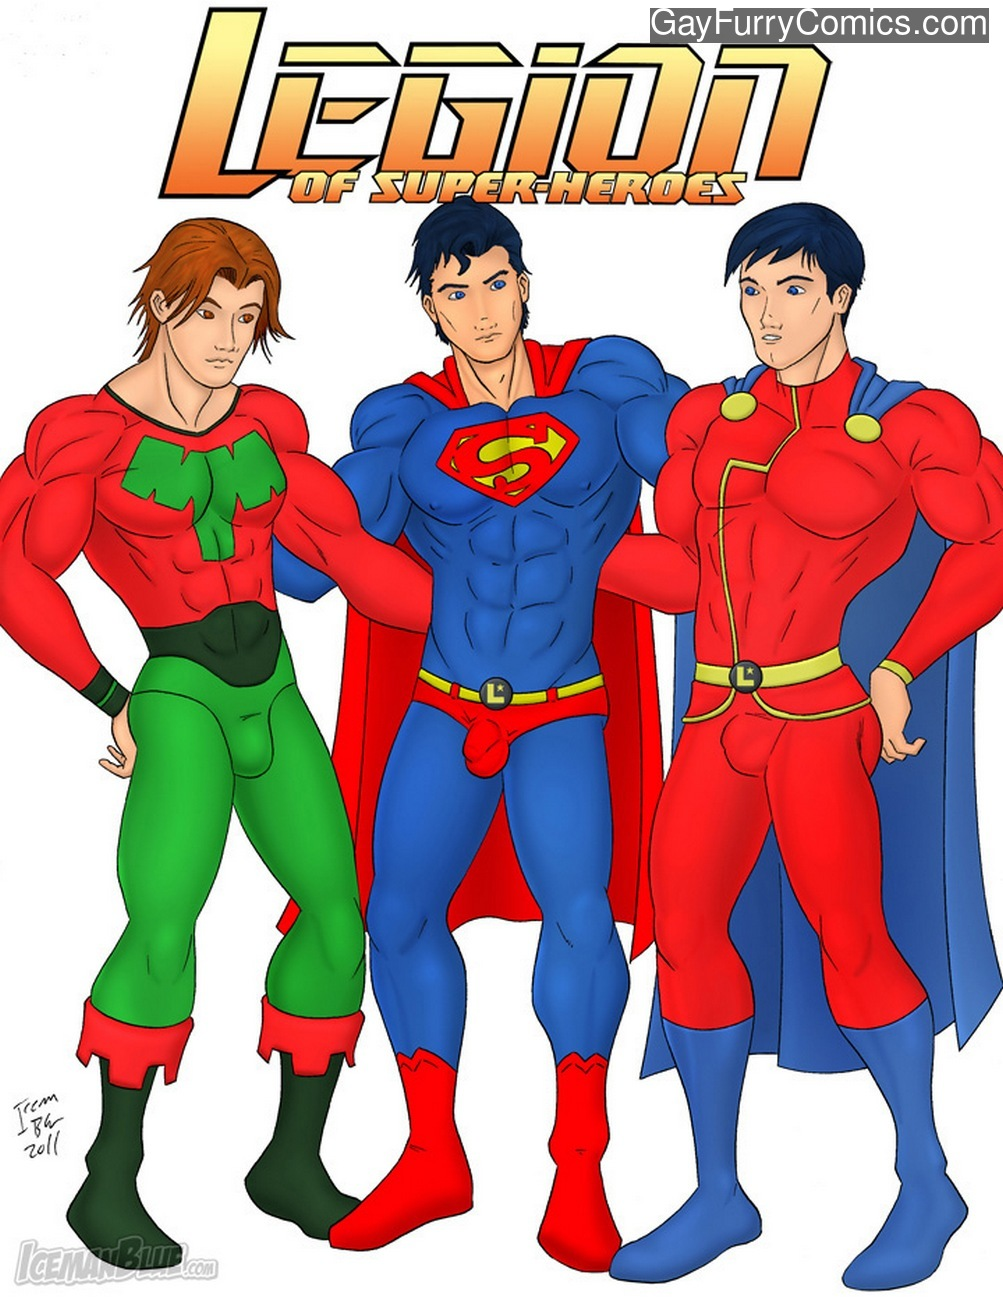 Legion Of Super-Heroes gay furry comic